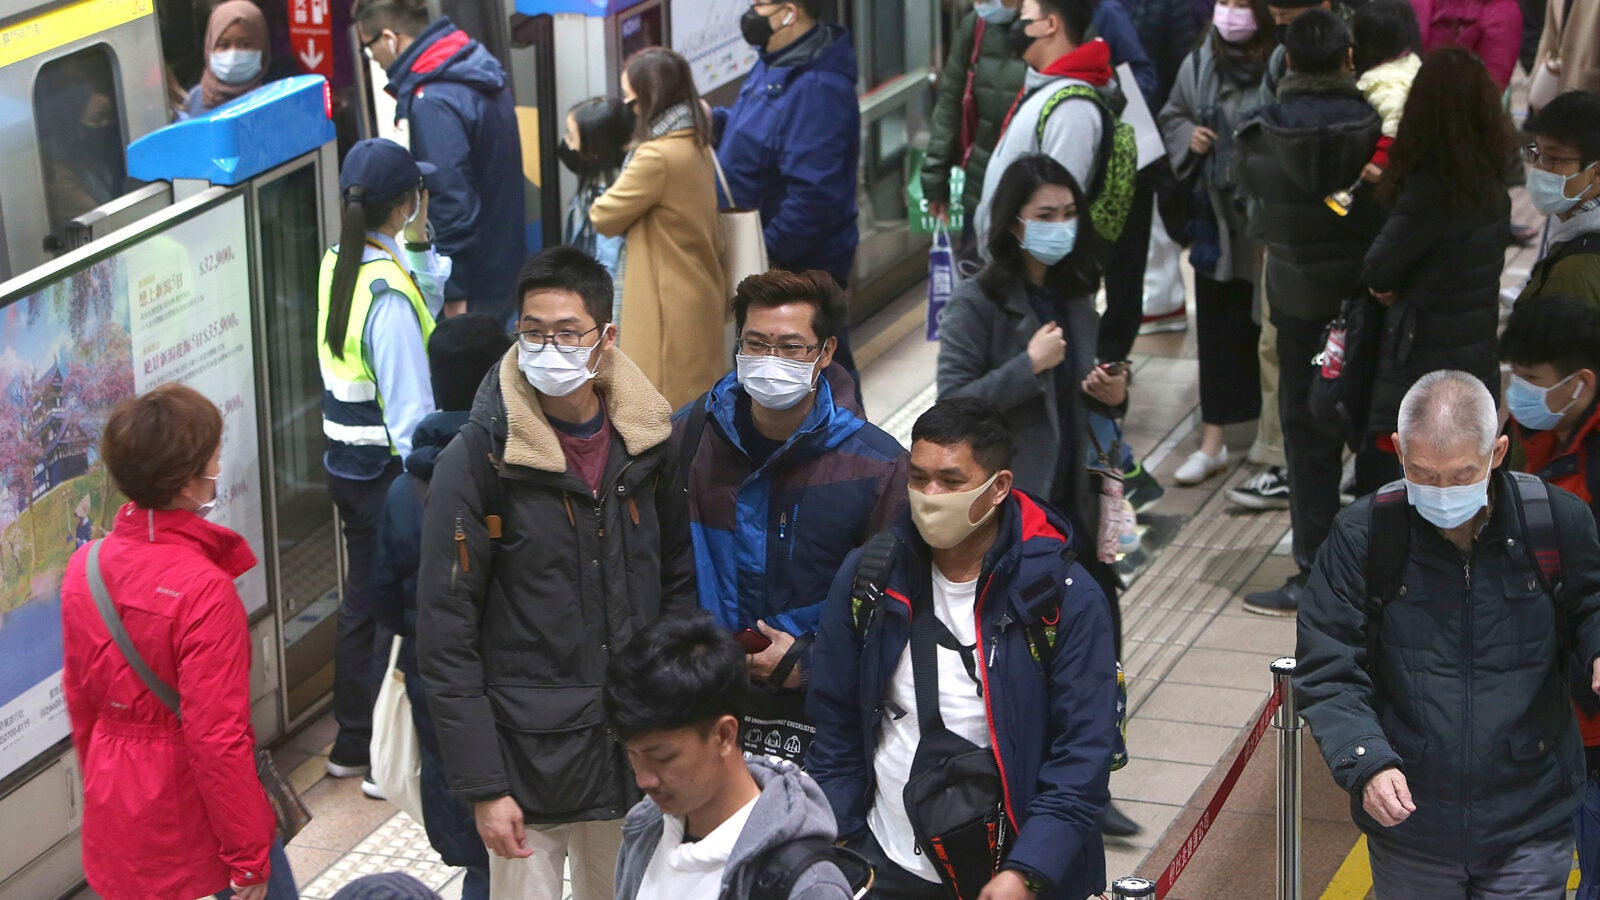 People with masks on at a Chinese metro station.